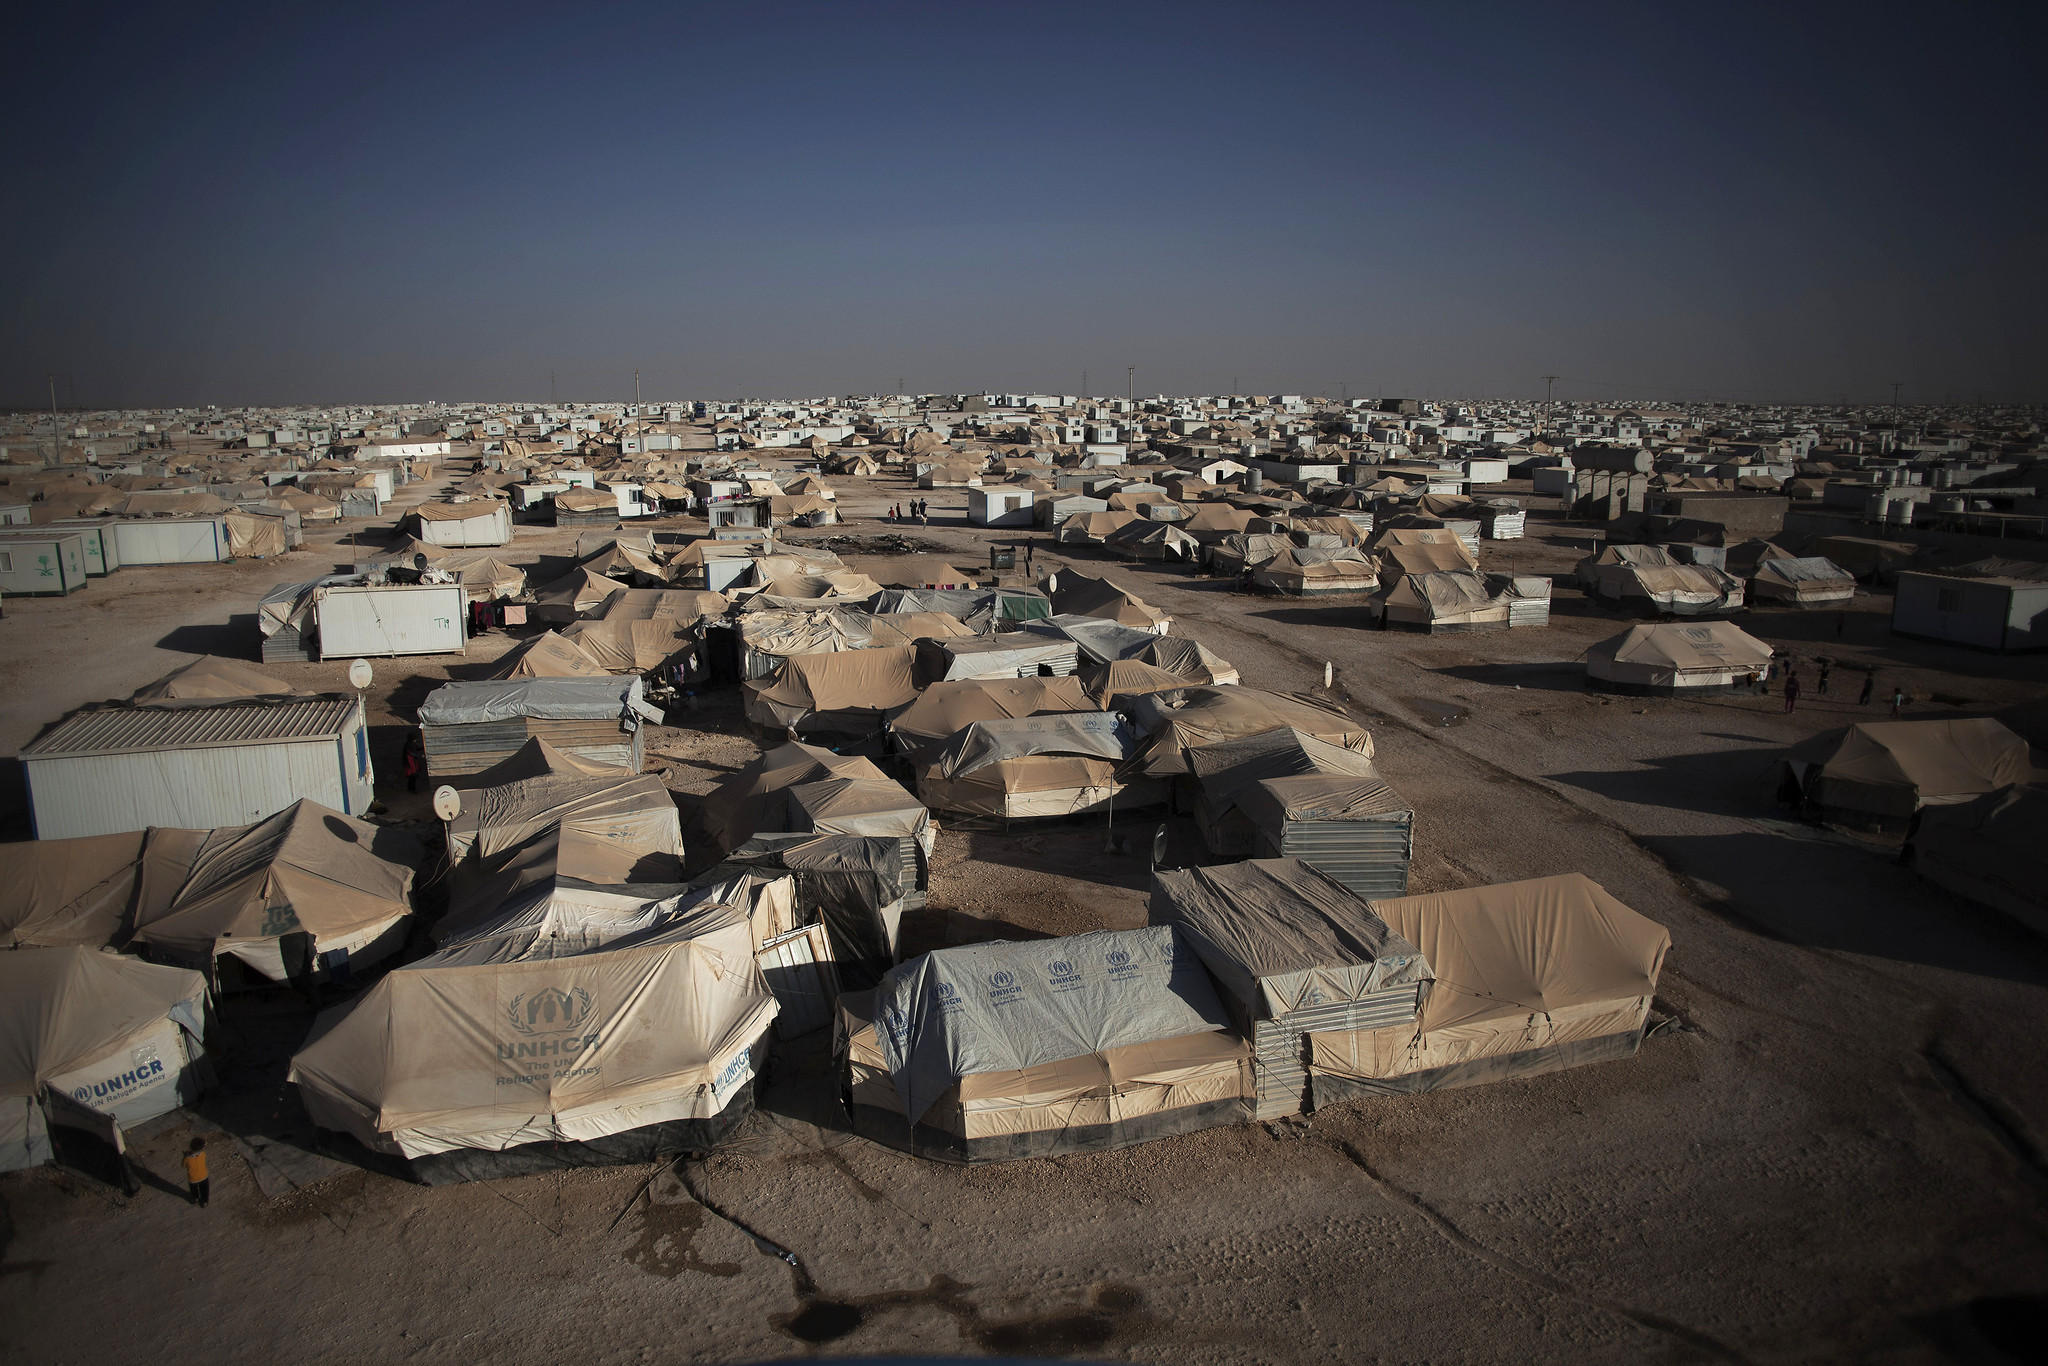 la-fg-wn-jordan-syria-refugee-camp-20140406-001